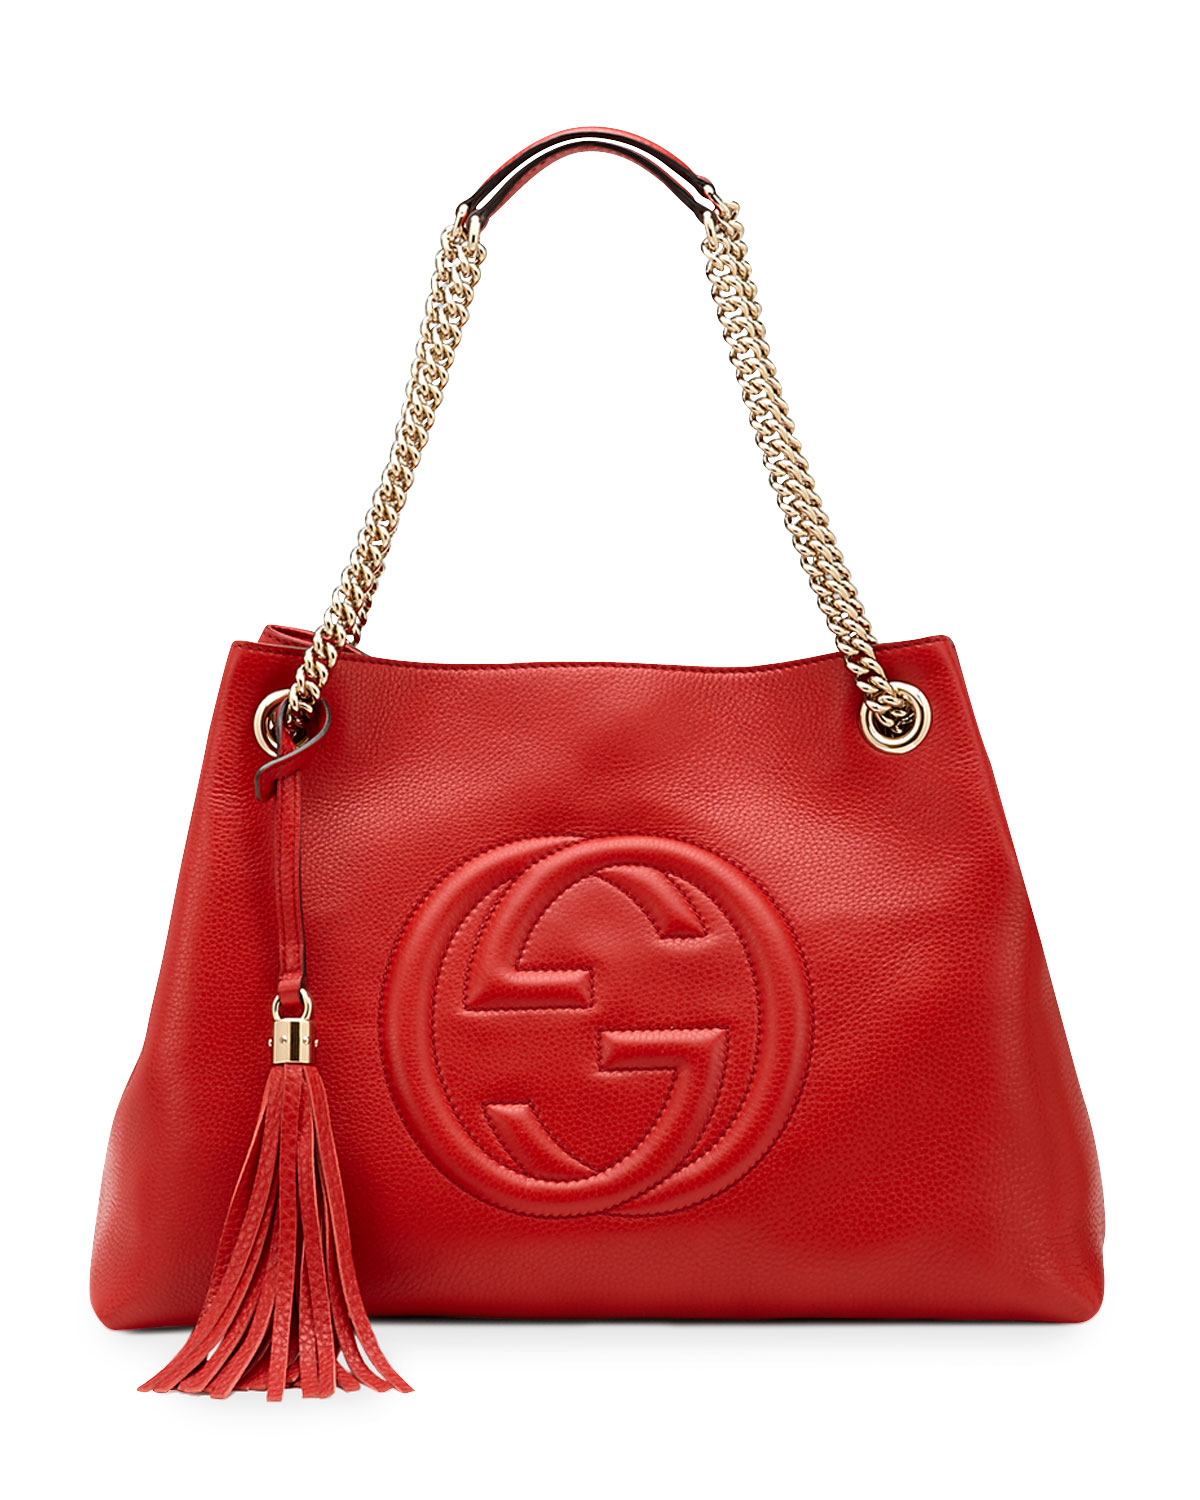 82932c4b2c64 Gucci Soho Leather Medium Chain-Strap Tote, Red | Neiman Marcus